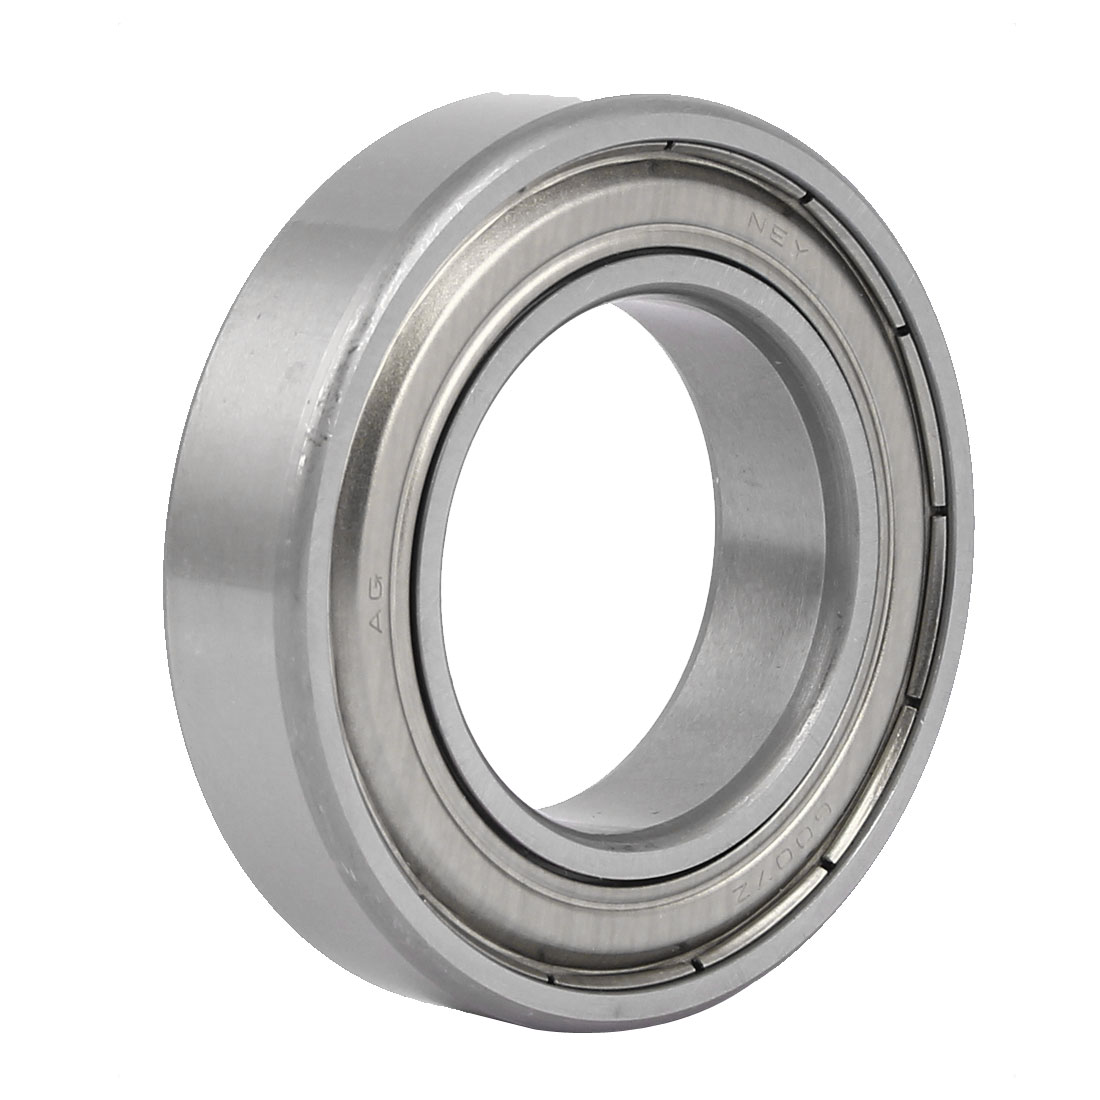 ZZ6008 40mm Inside Dia 68mm Outside Dia Double Sealed Deep Groove Ball Bearing